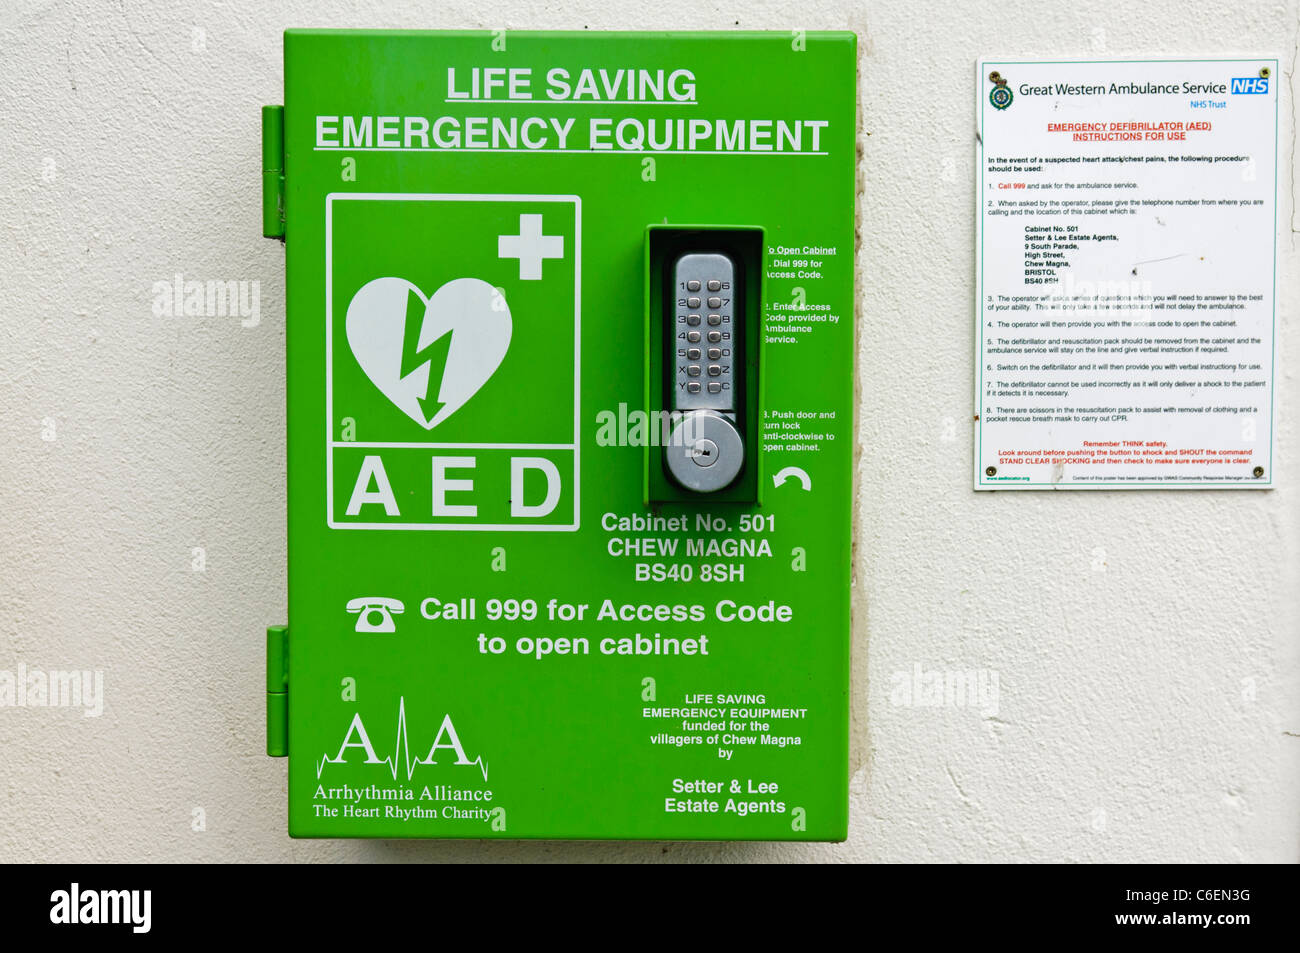 Automated External Defibrillator in a locked cabinet in a public area - Stock Image